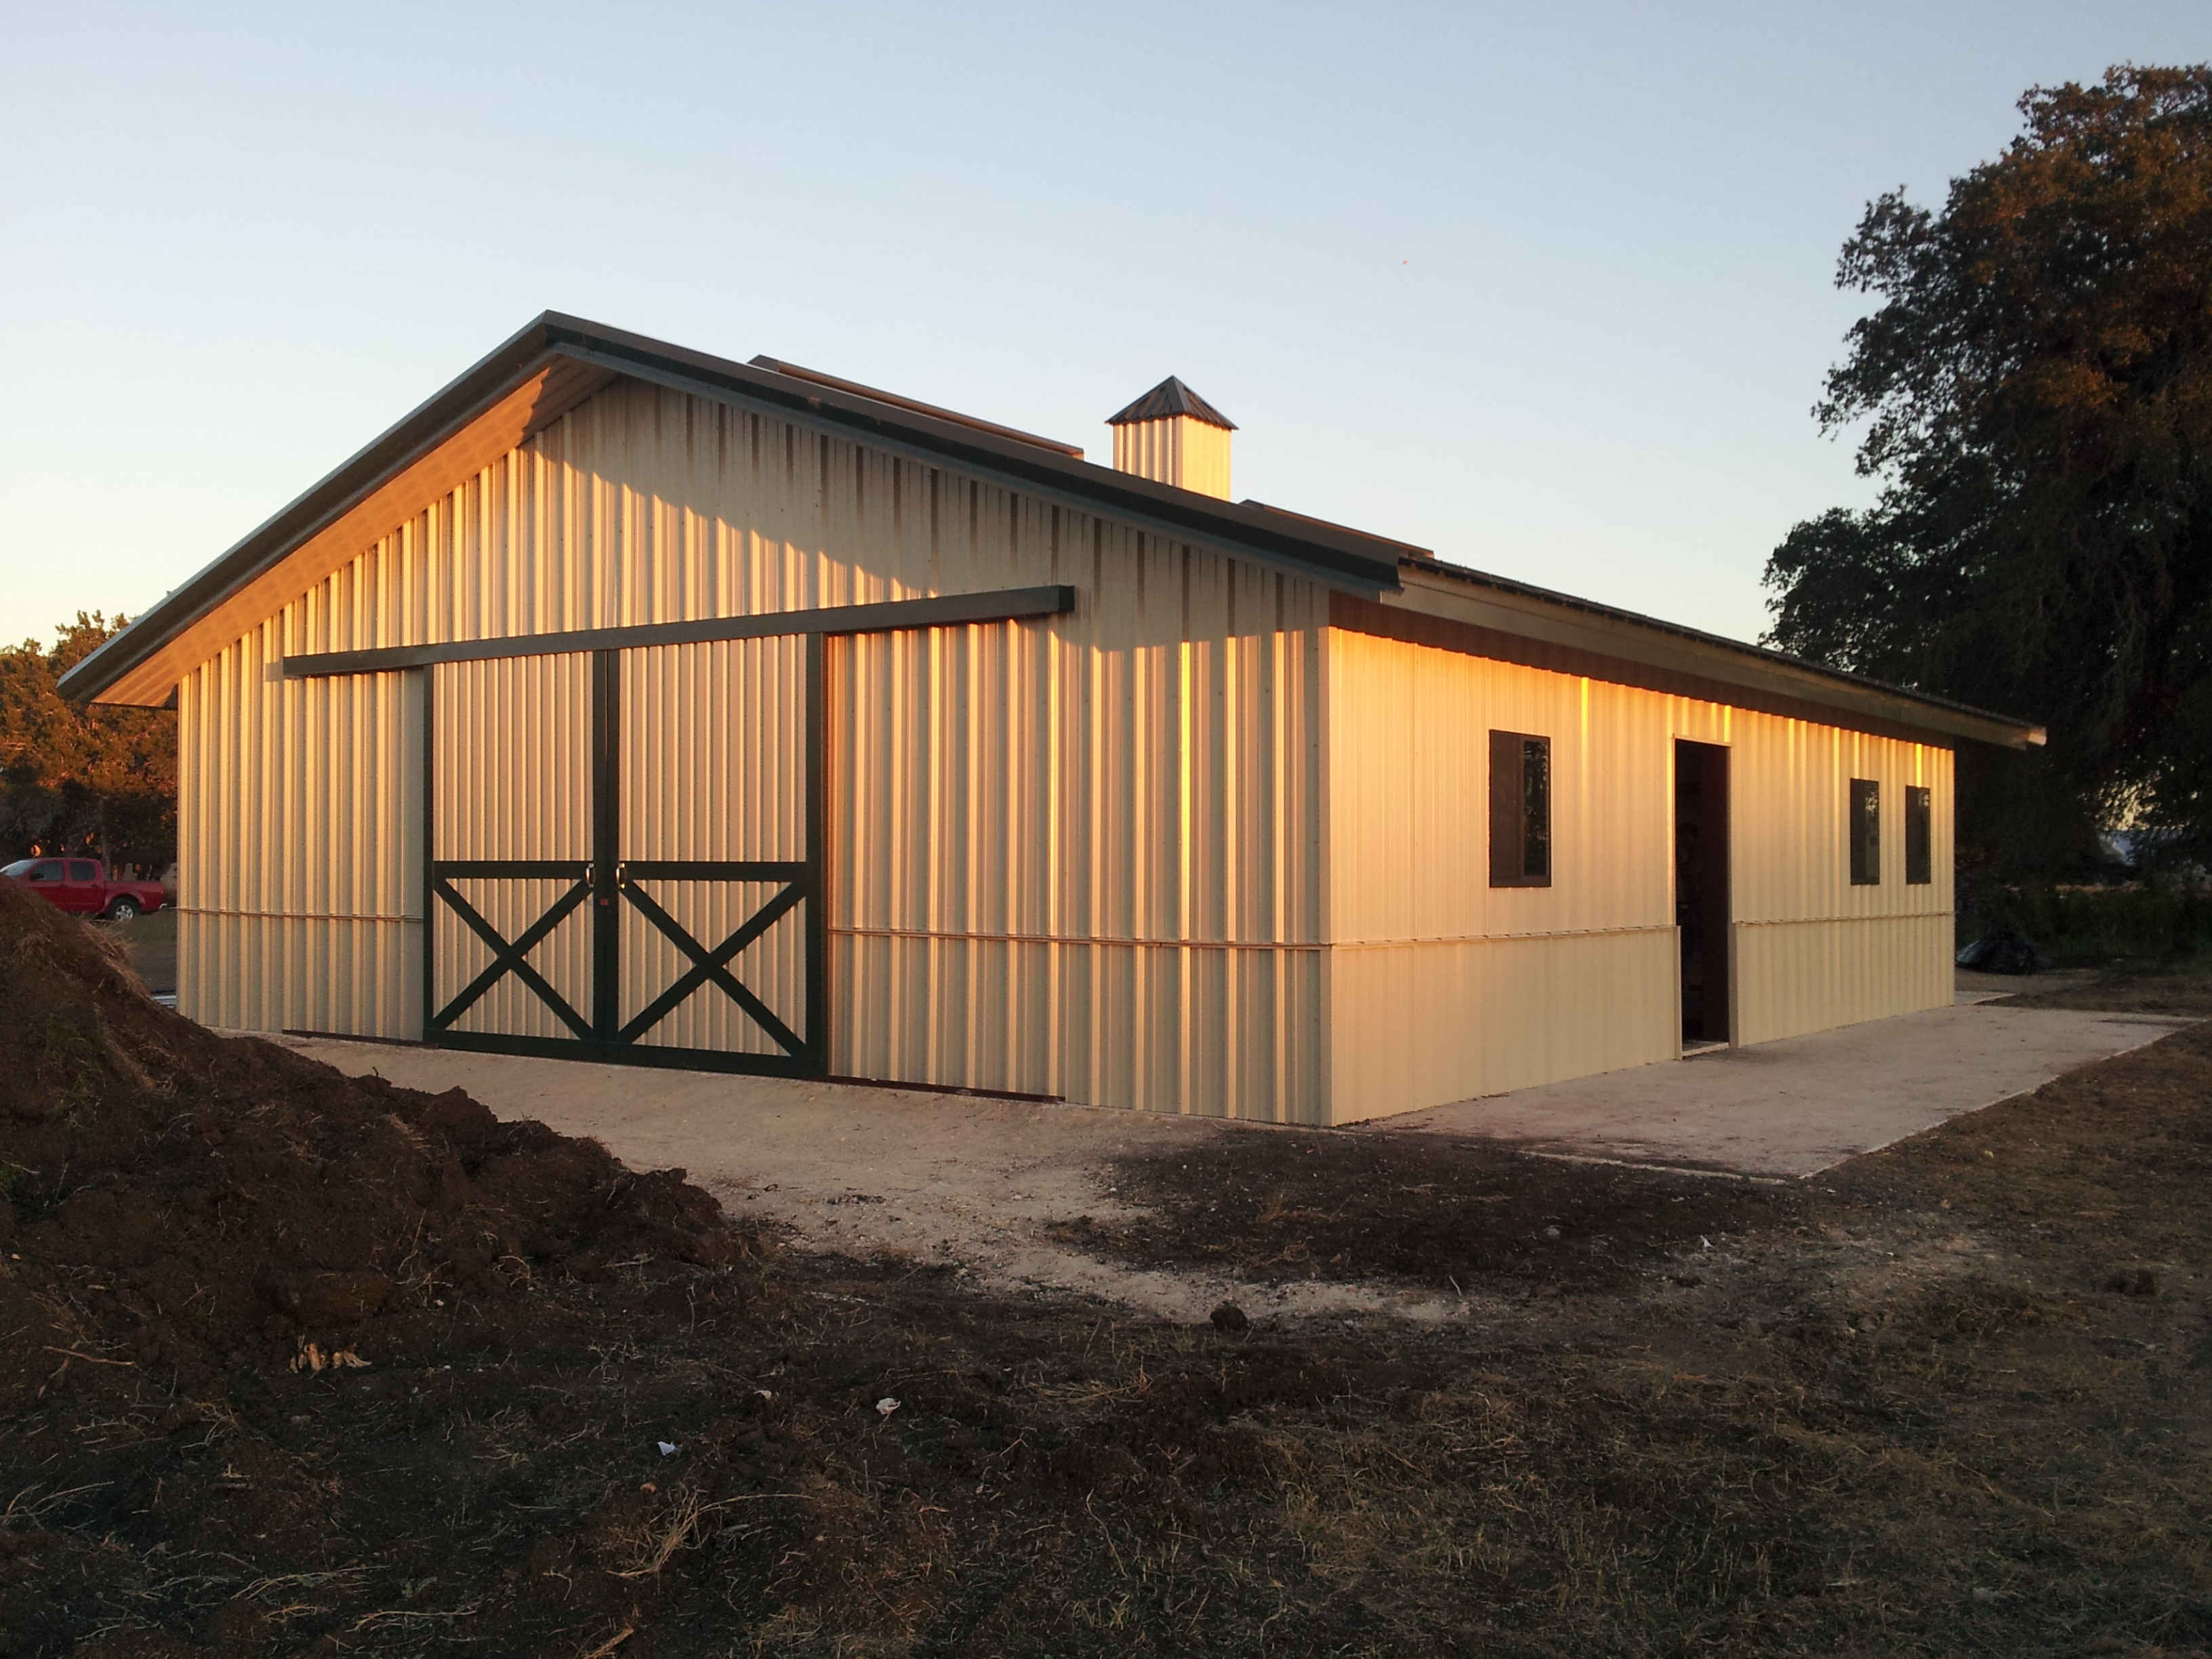 And Ideas More Barn Ideas Barns Design Horse Barn Designs